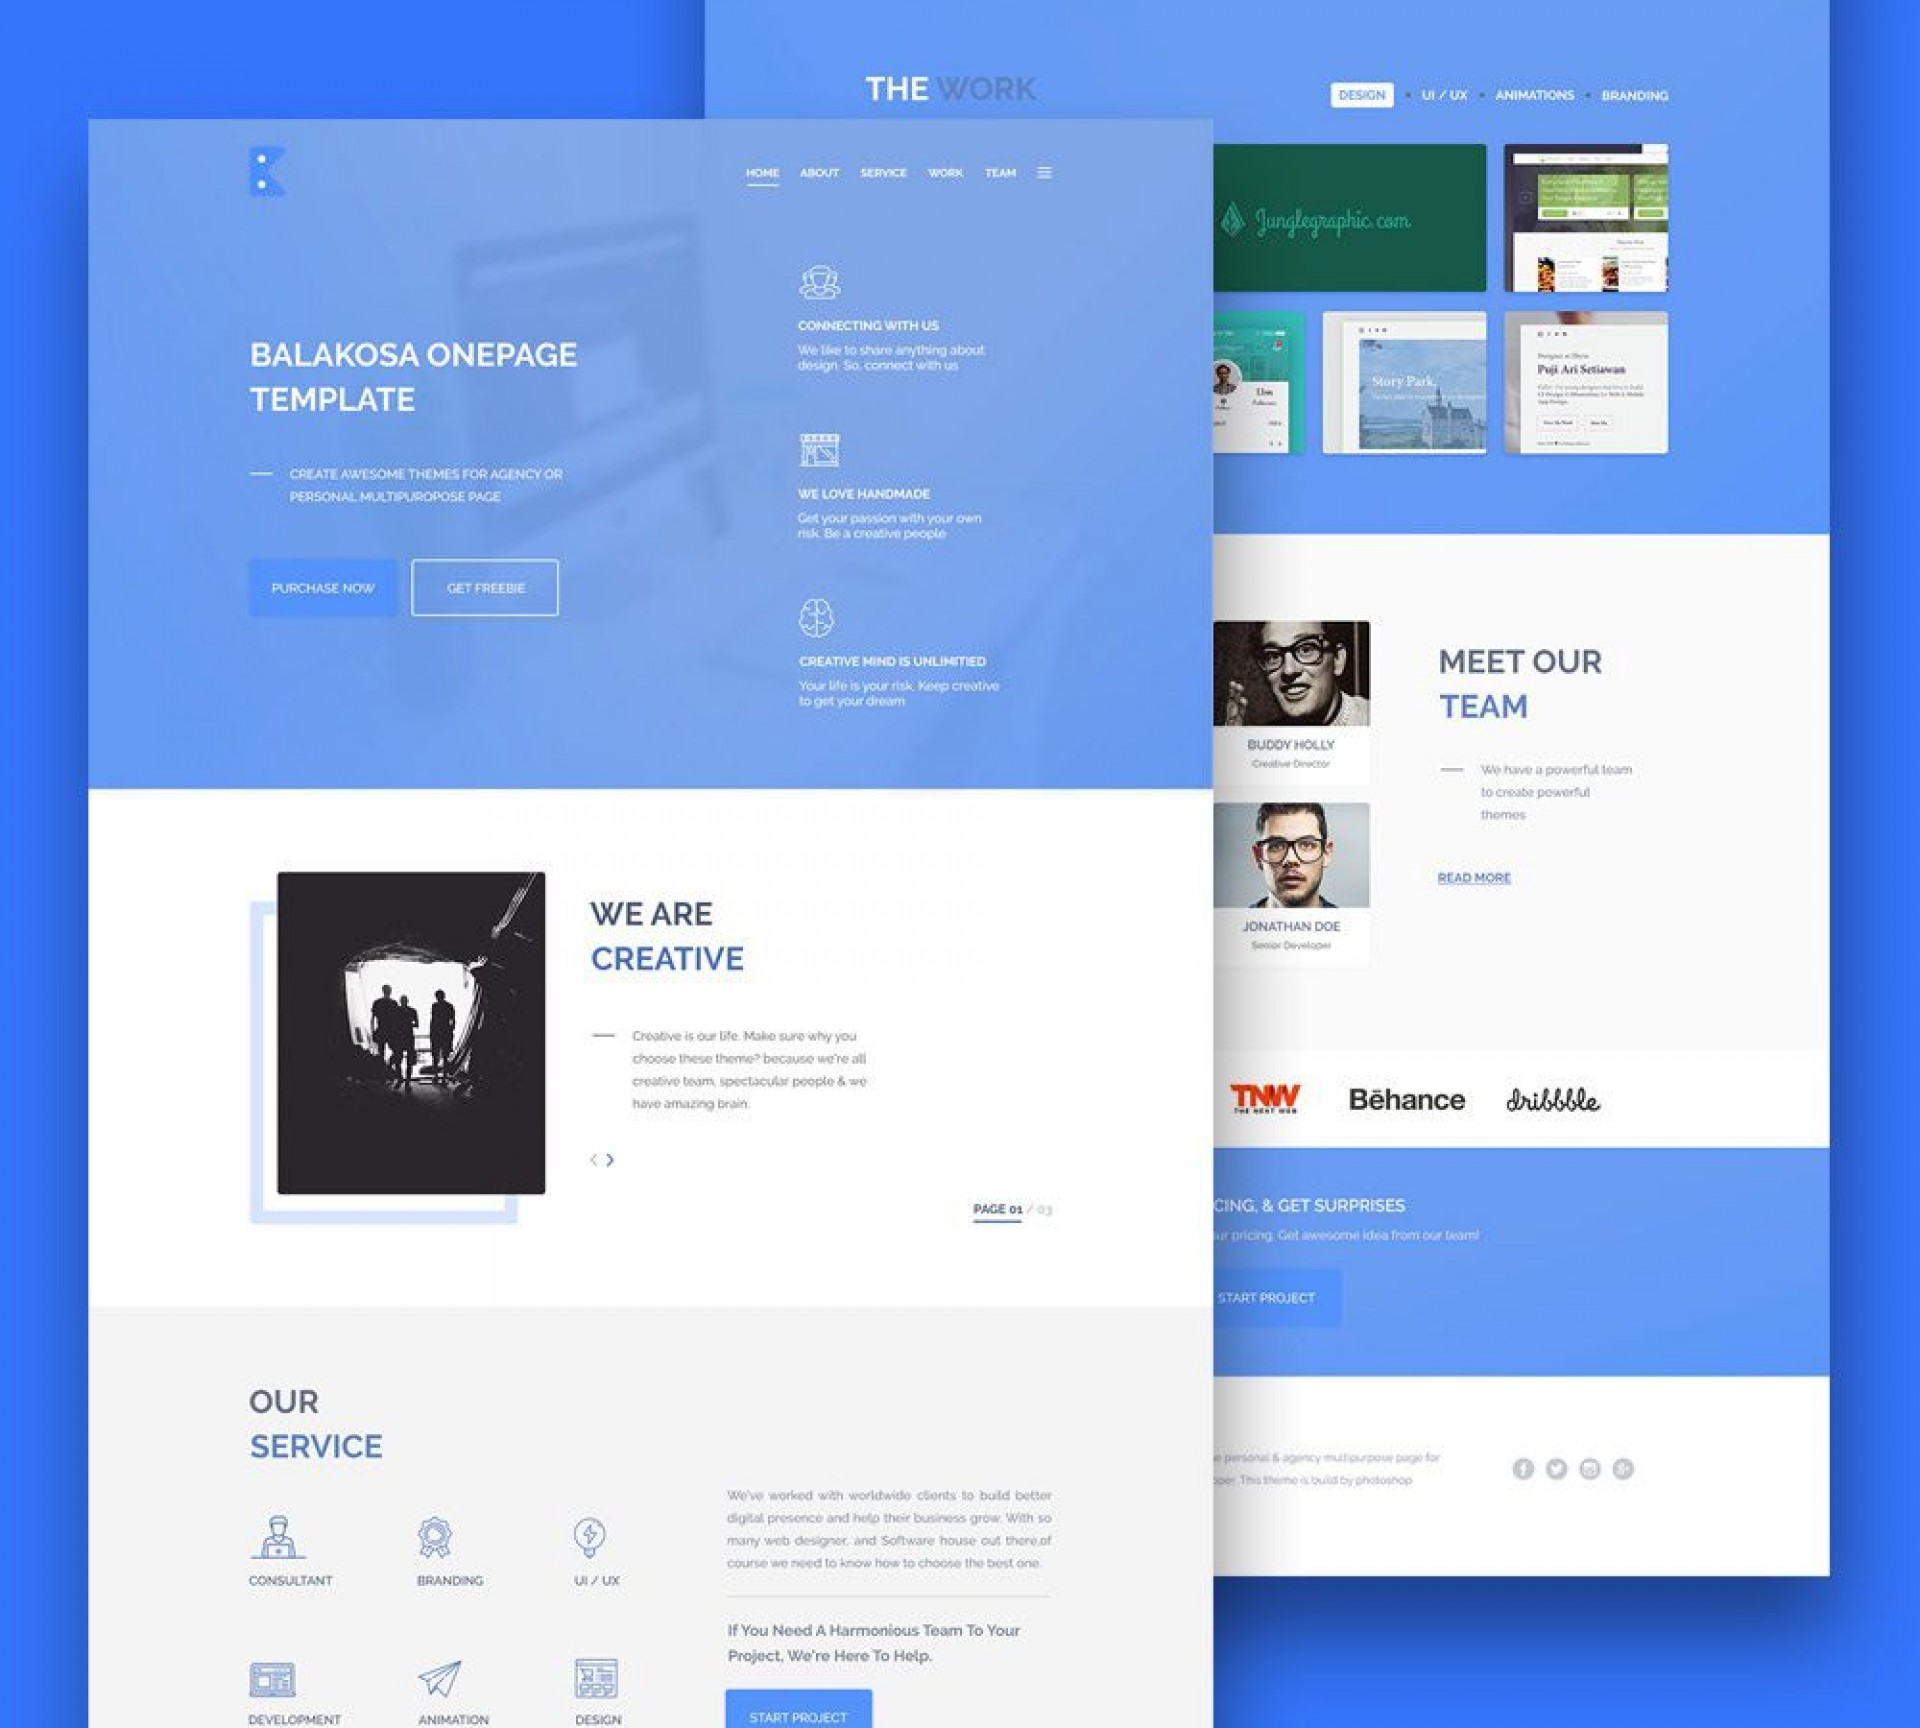 006 Wondrou One Page Website Template Free High Resolution  Bootstrap 4 Html5 Download Wordpres1920